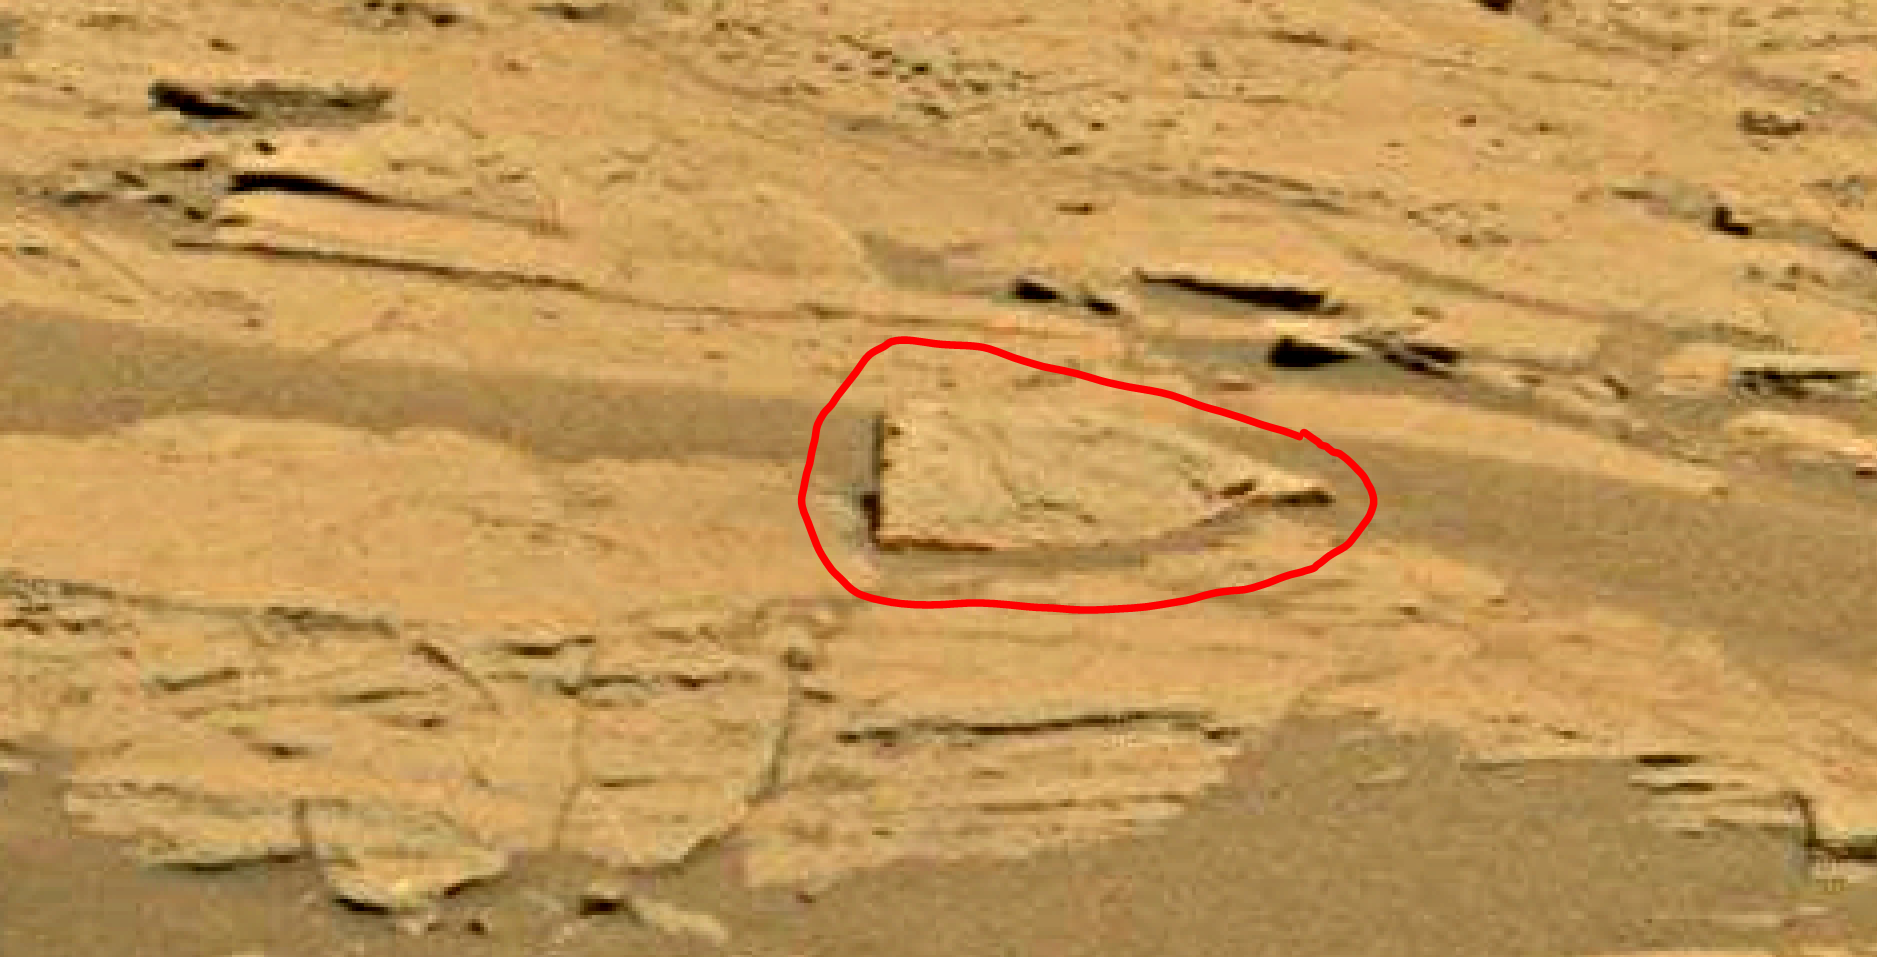 mars sol 1353 anomaly-artifacts 61 was life on mars